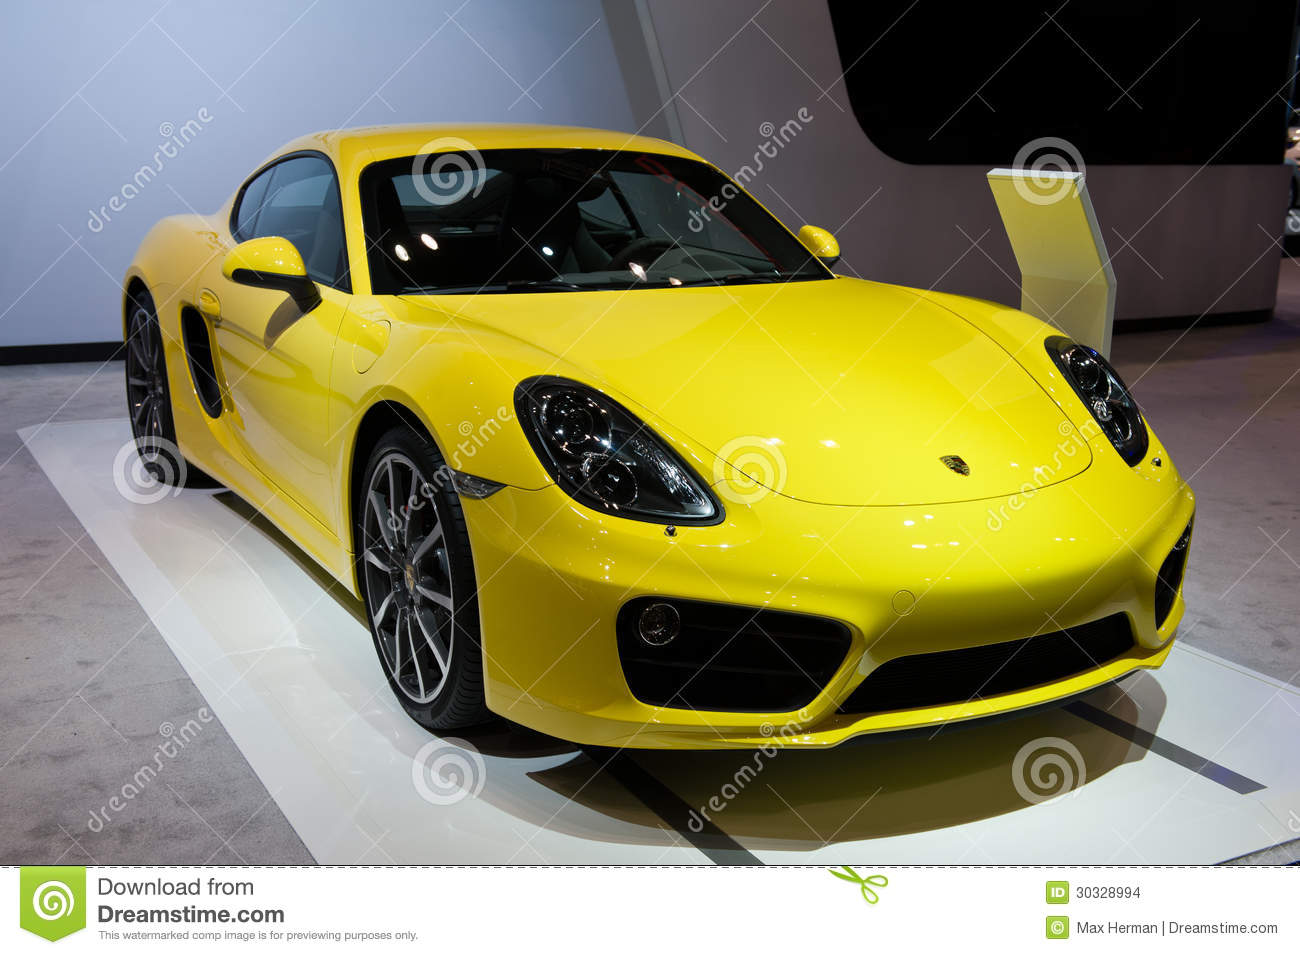 chicago auto show yellow car editorial image